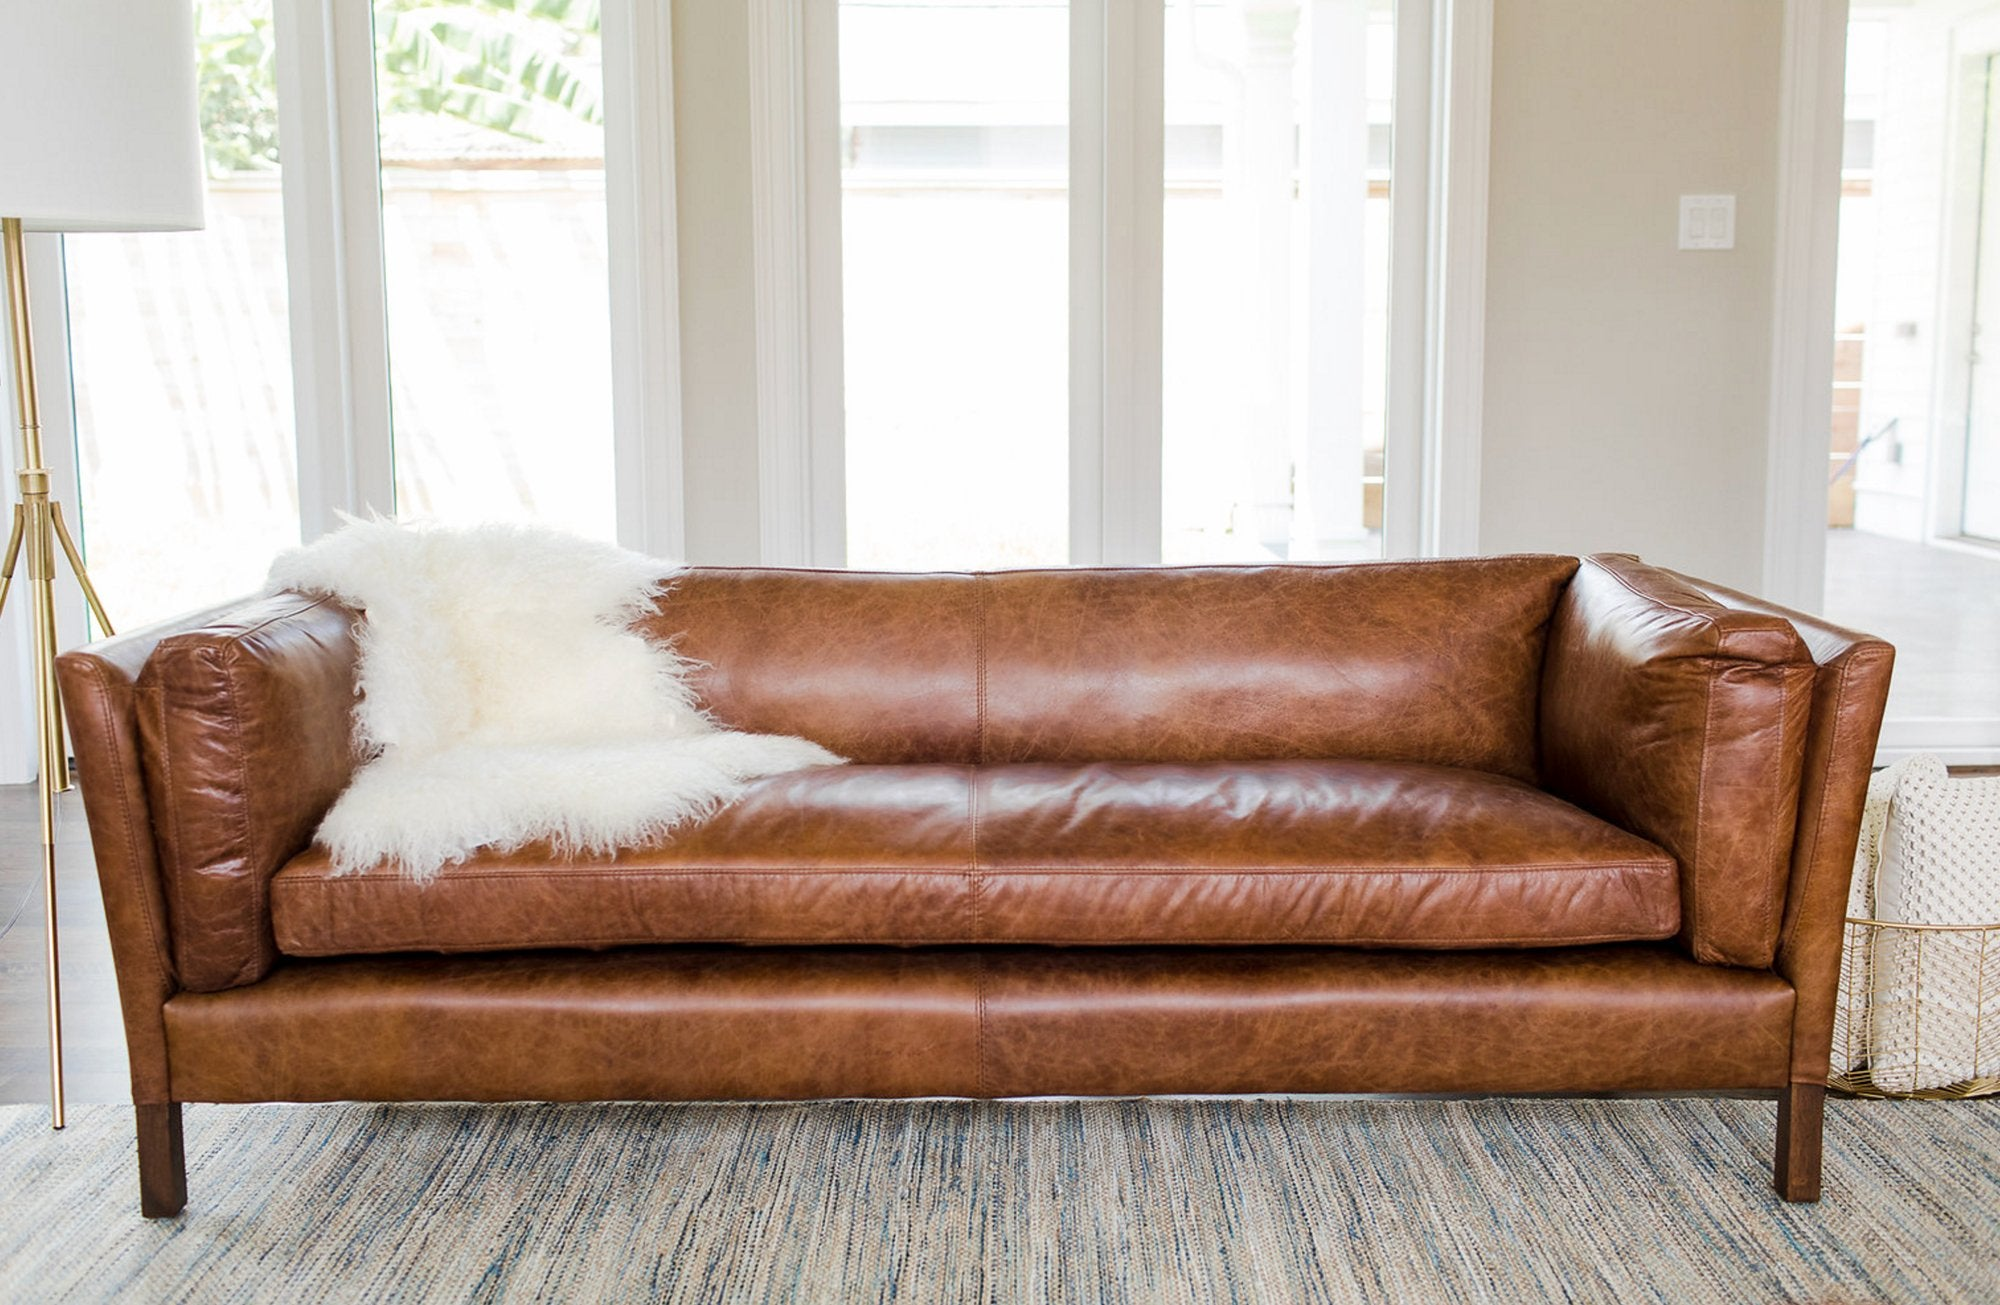 - Finley Mid-Century Modern Leather Sofa - MidCentury Leather Couch